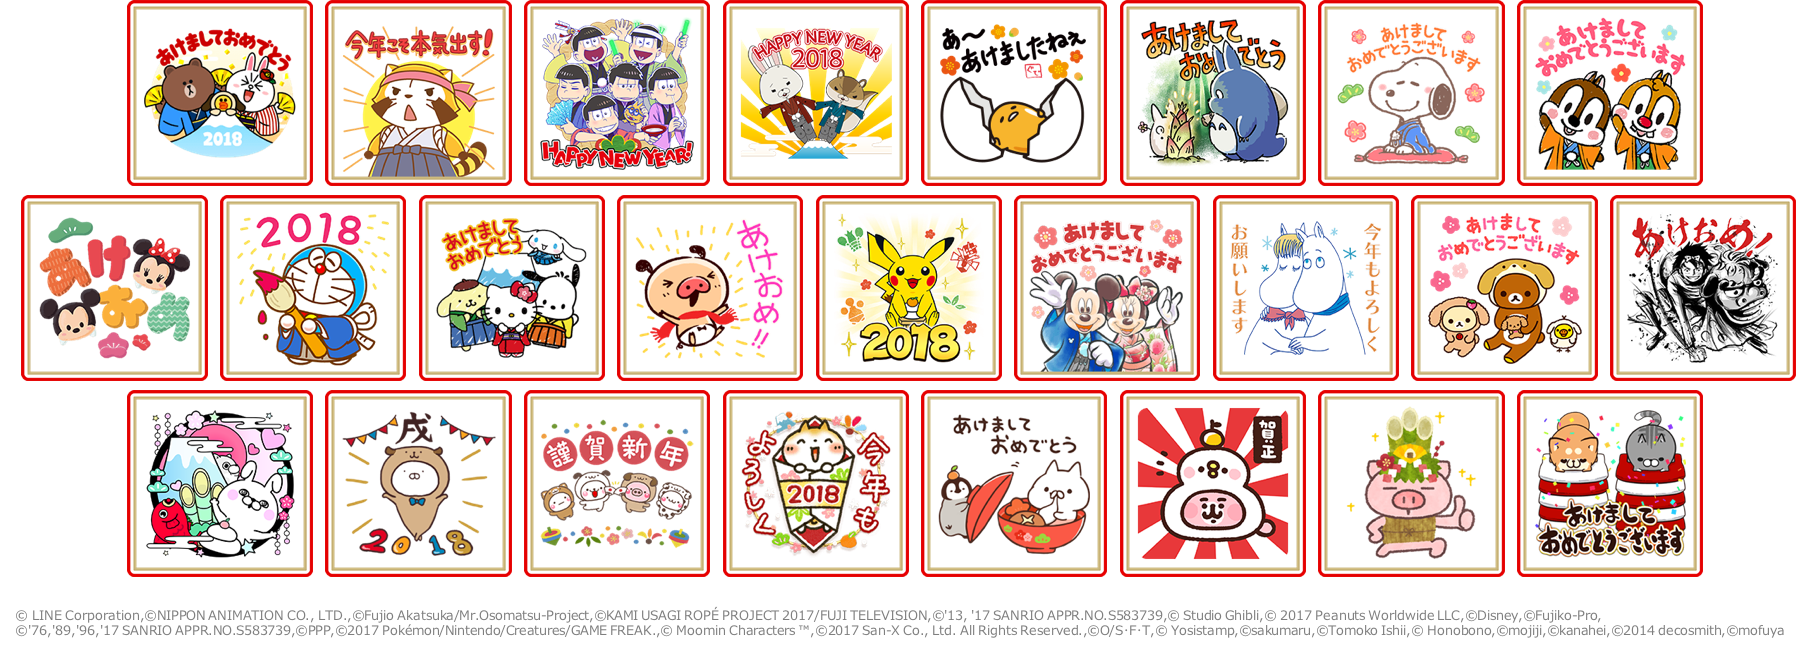 Japan2018 New Years Gift Stickers Announced 25 Designs Featuring